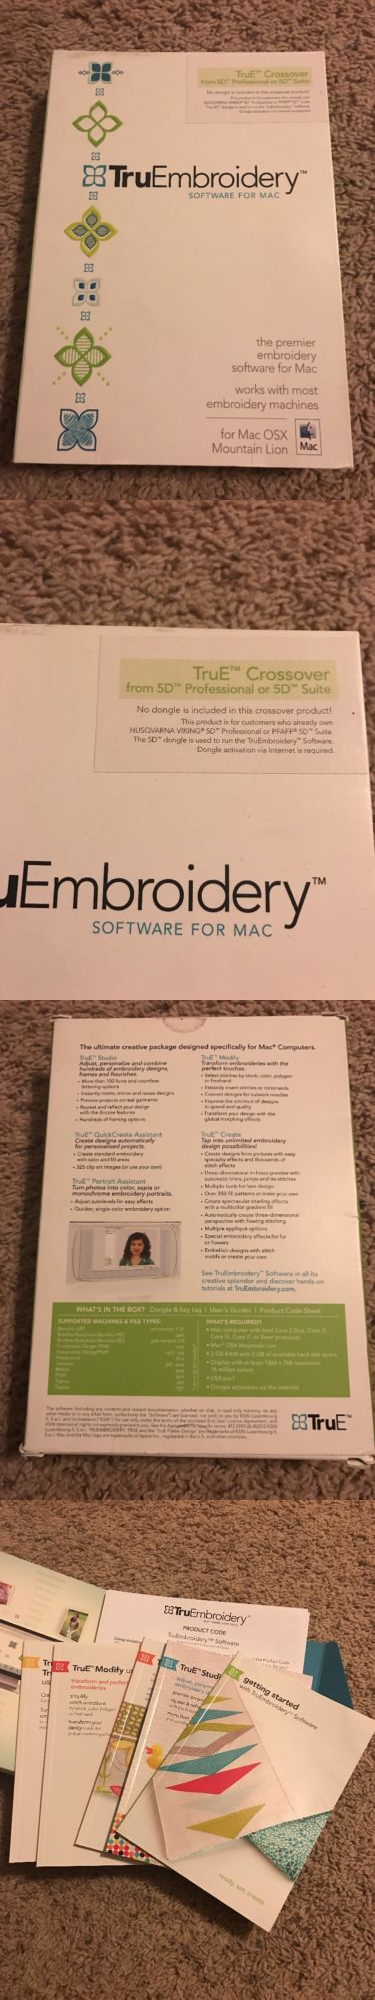 Digitizing Software 71197 Tru E Crossover Embroidery Software For